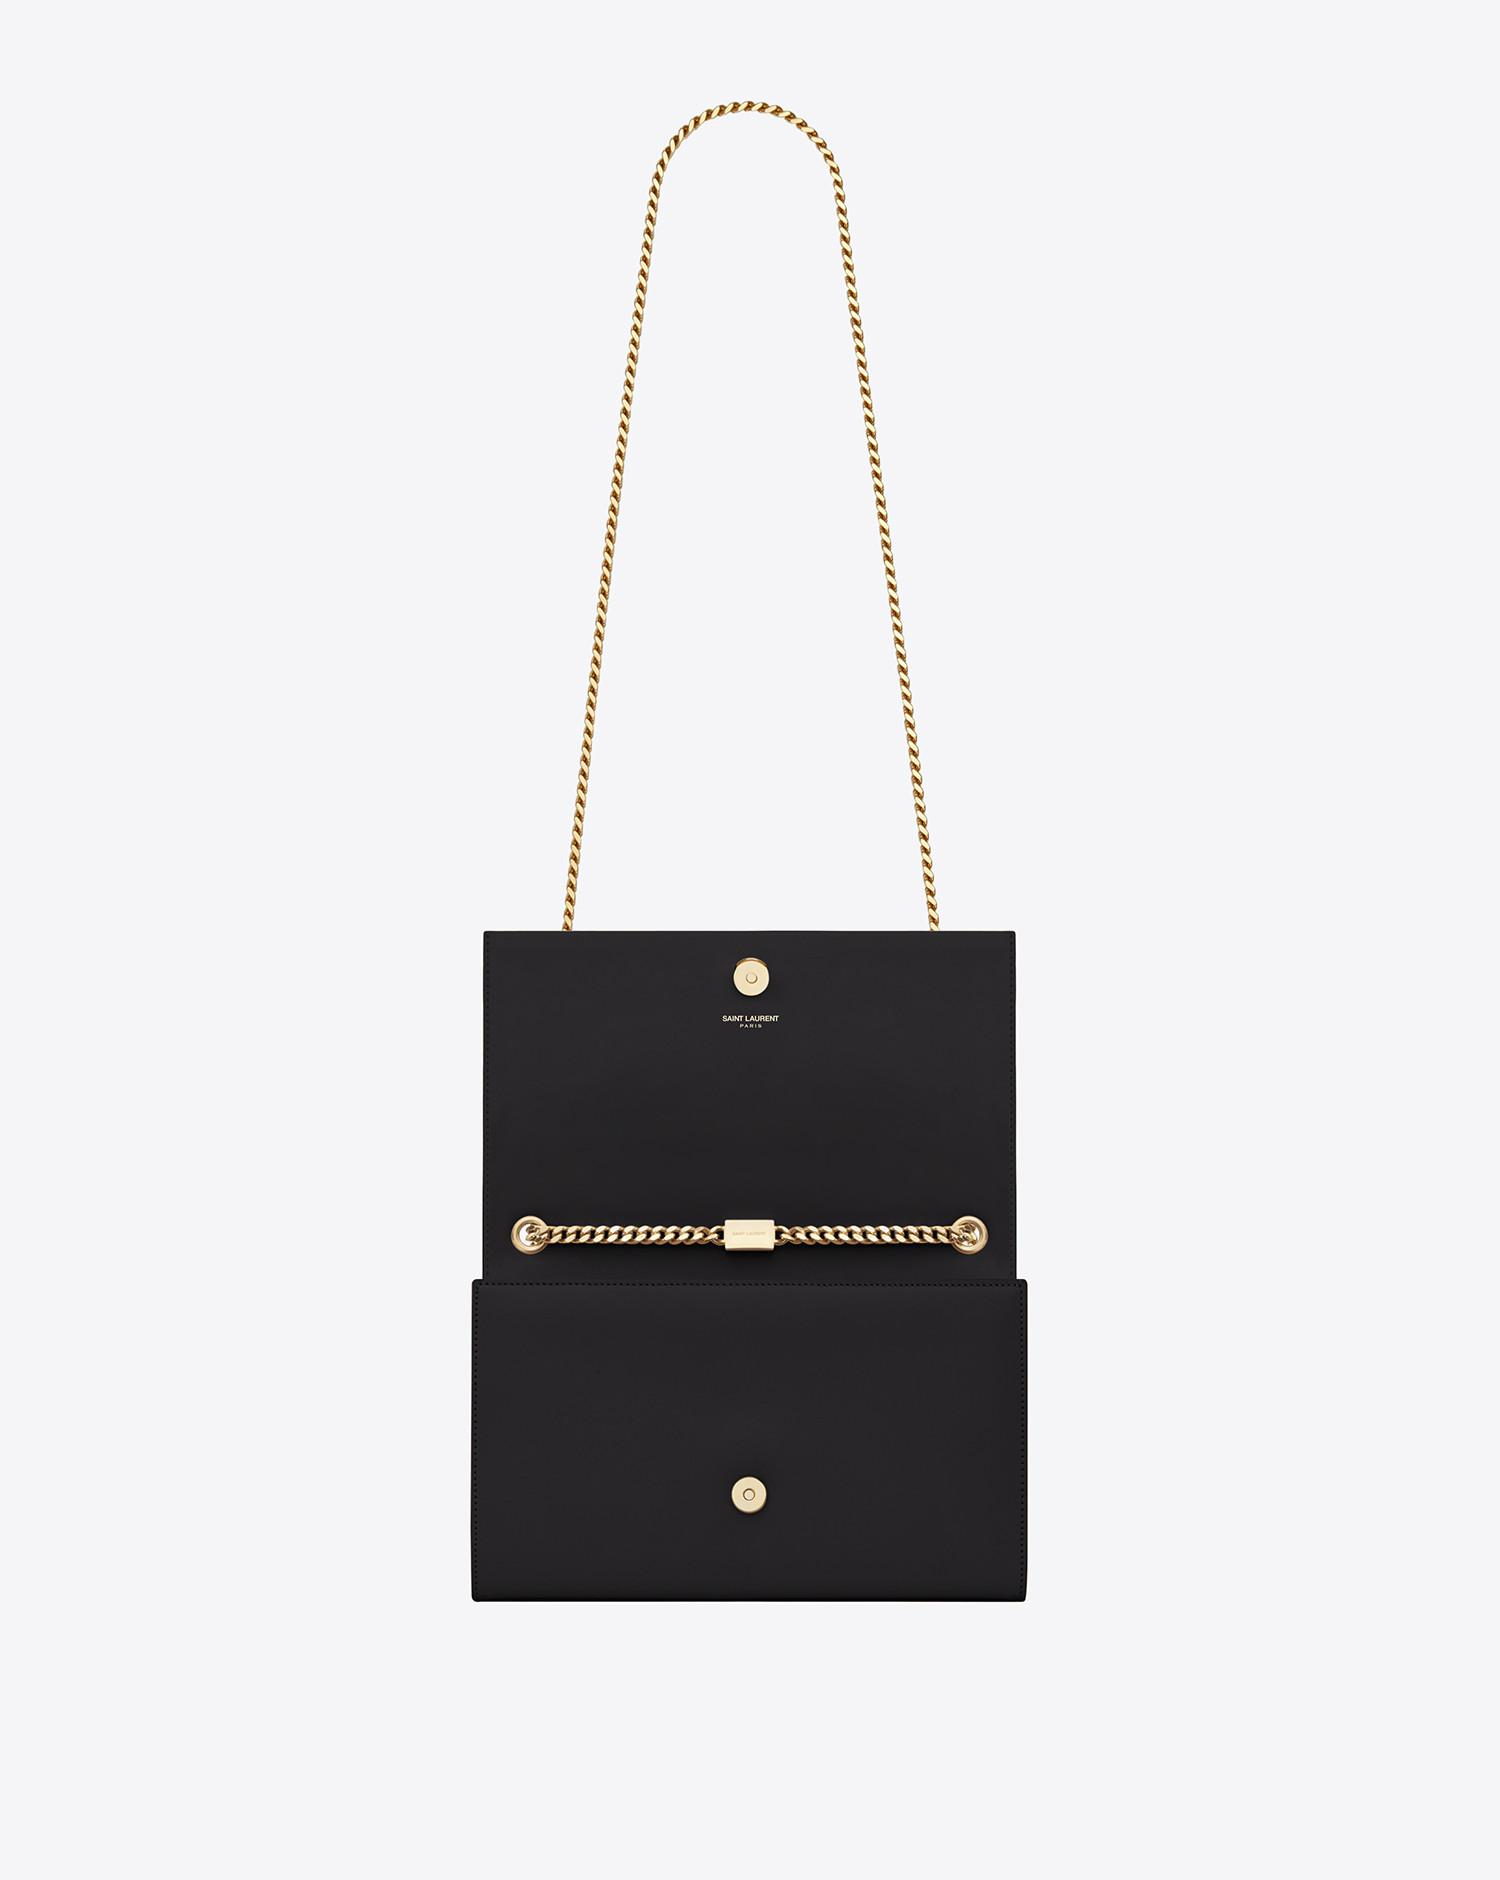 Saint Laurent - Black Classic Medium Kate Monogram Leather Shoulder Bag -  Lyst. View fullscreen 2c0b4c9de721a